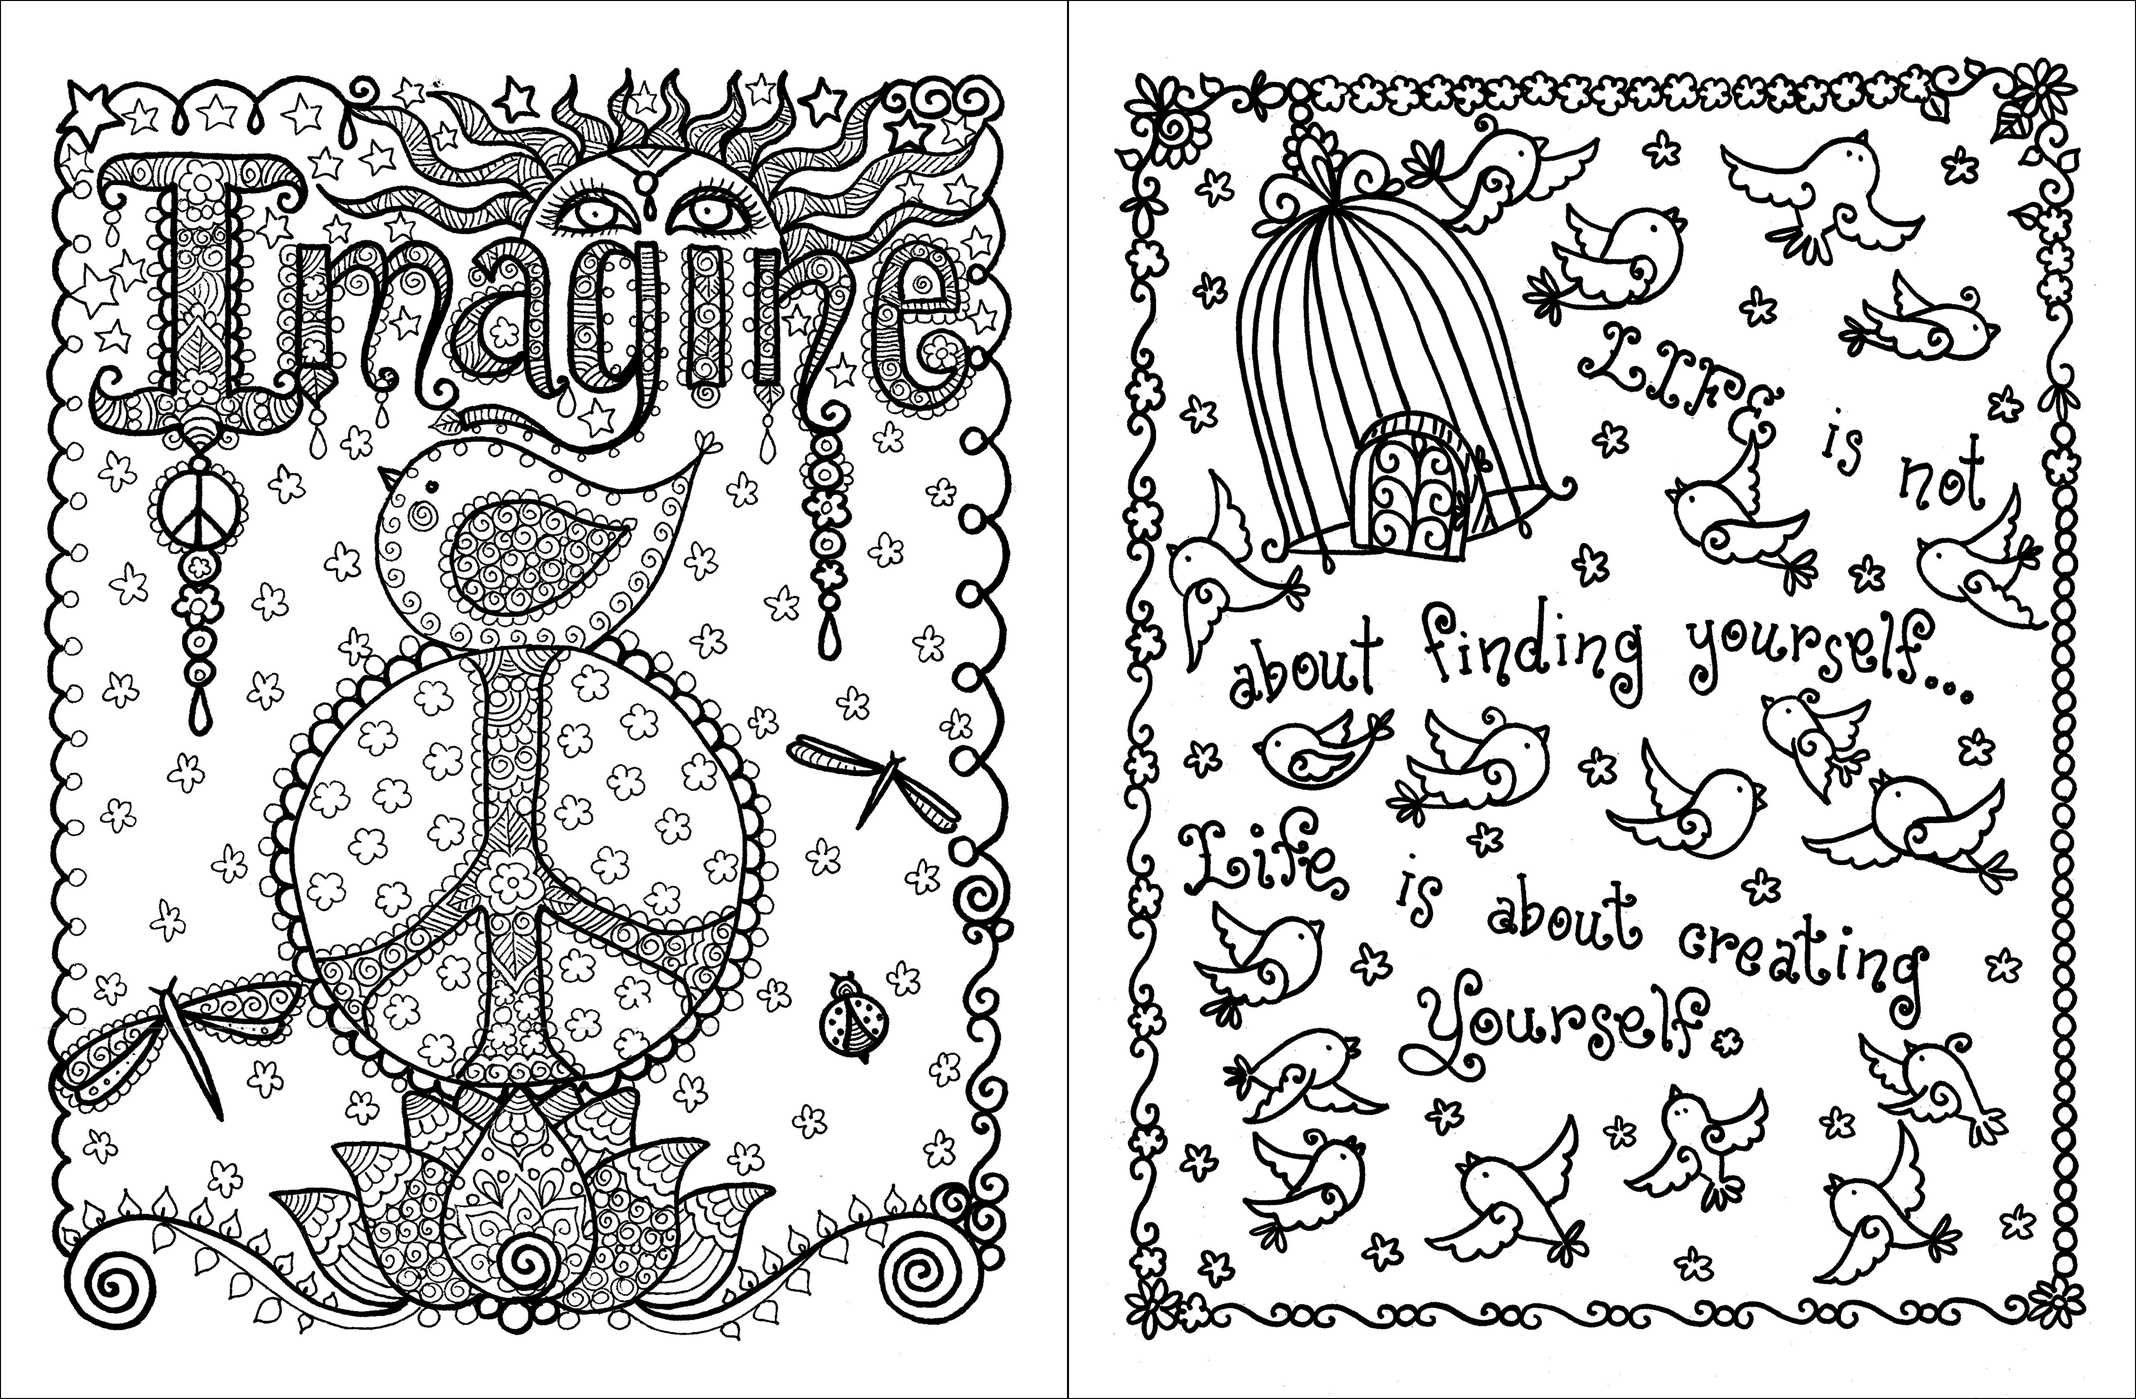 Coloring book inspirational - Buy Posh Adult Coloring Book Inspirational Quotes For Fun